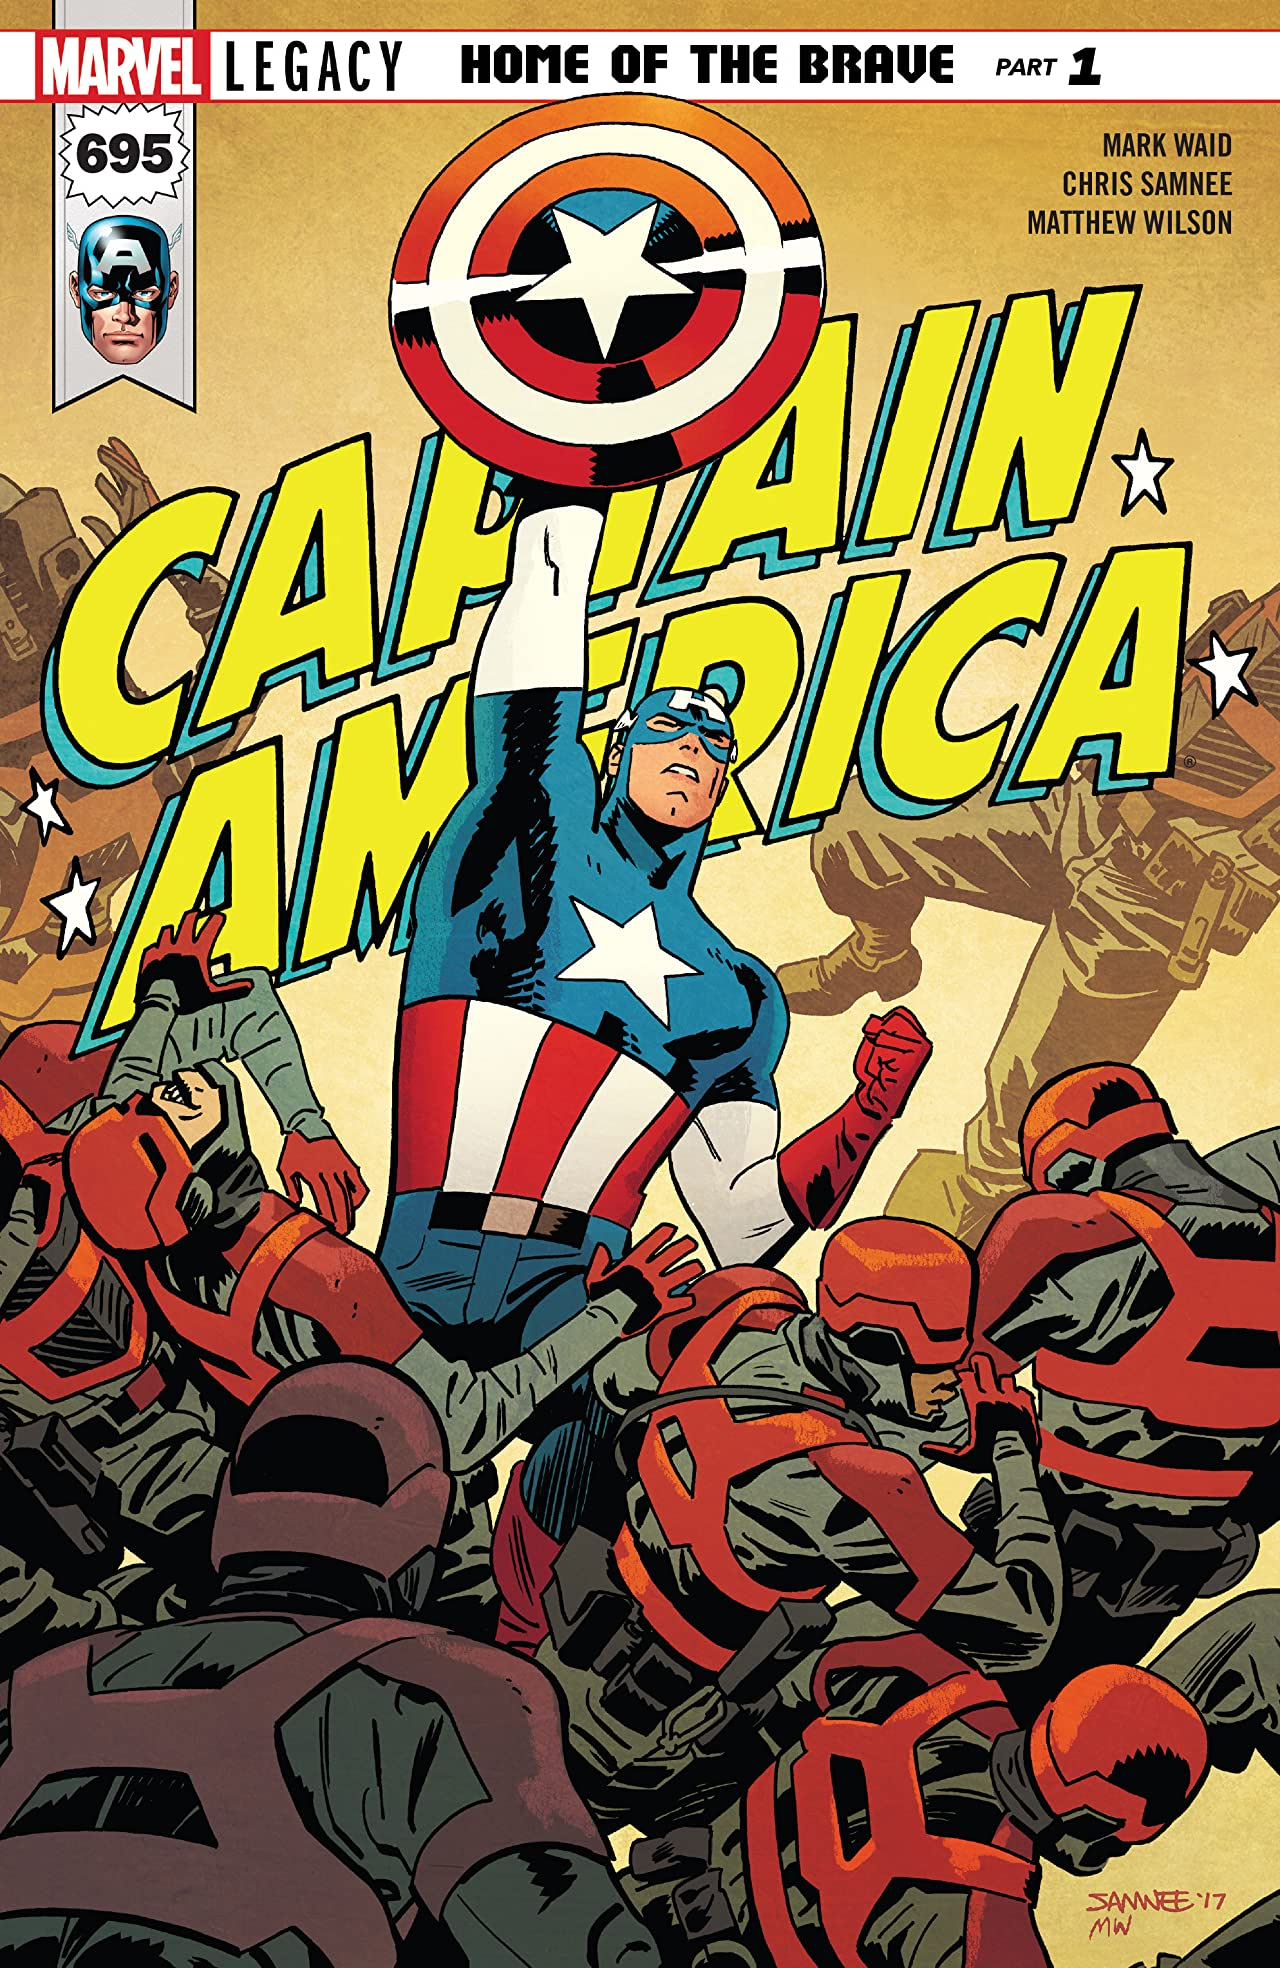 That interfere, Avengers captain america comic book covers